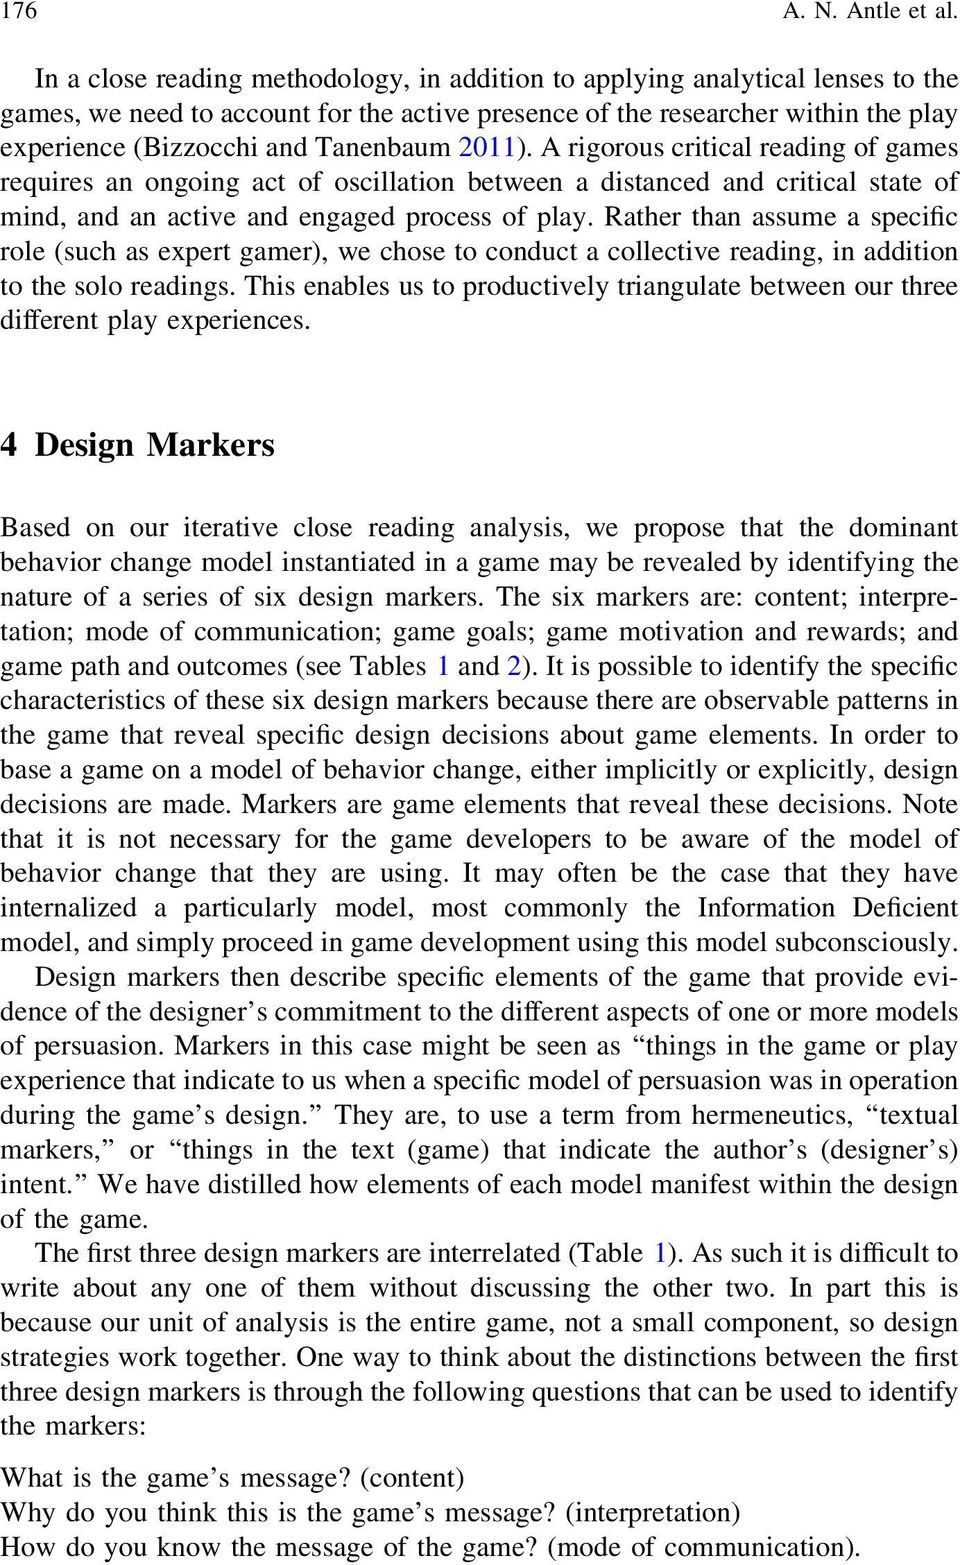 Tanenbaum 2011). A rigorous critical reading of games requires an ongoing act of oscillation between a distanced and critical state of mind, and an active and engaged process of play.